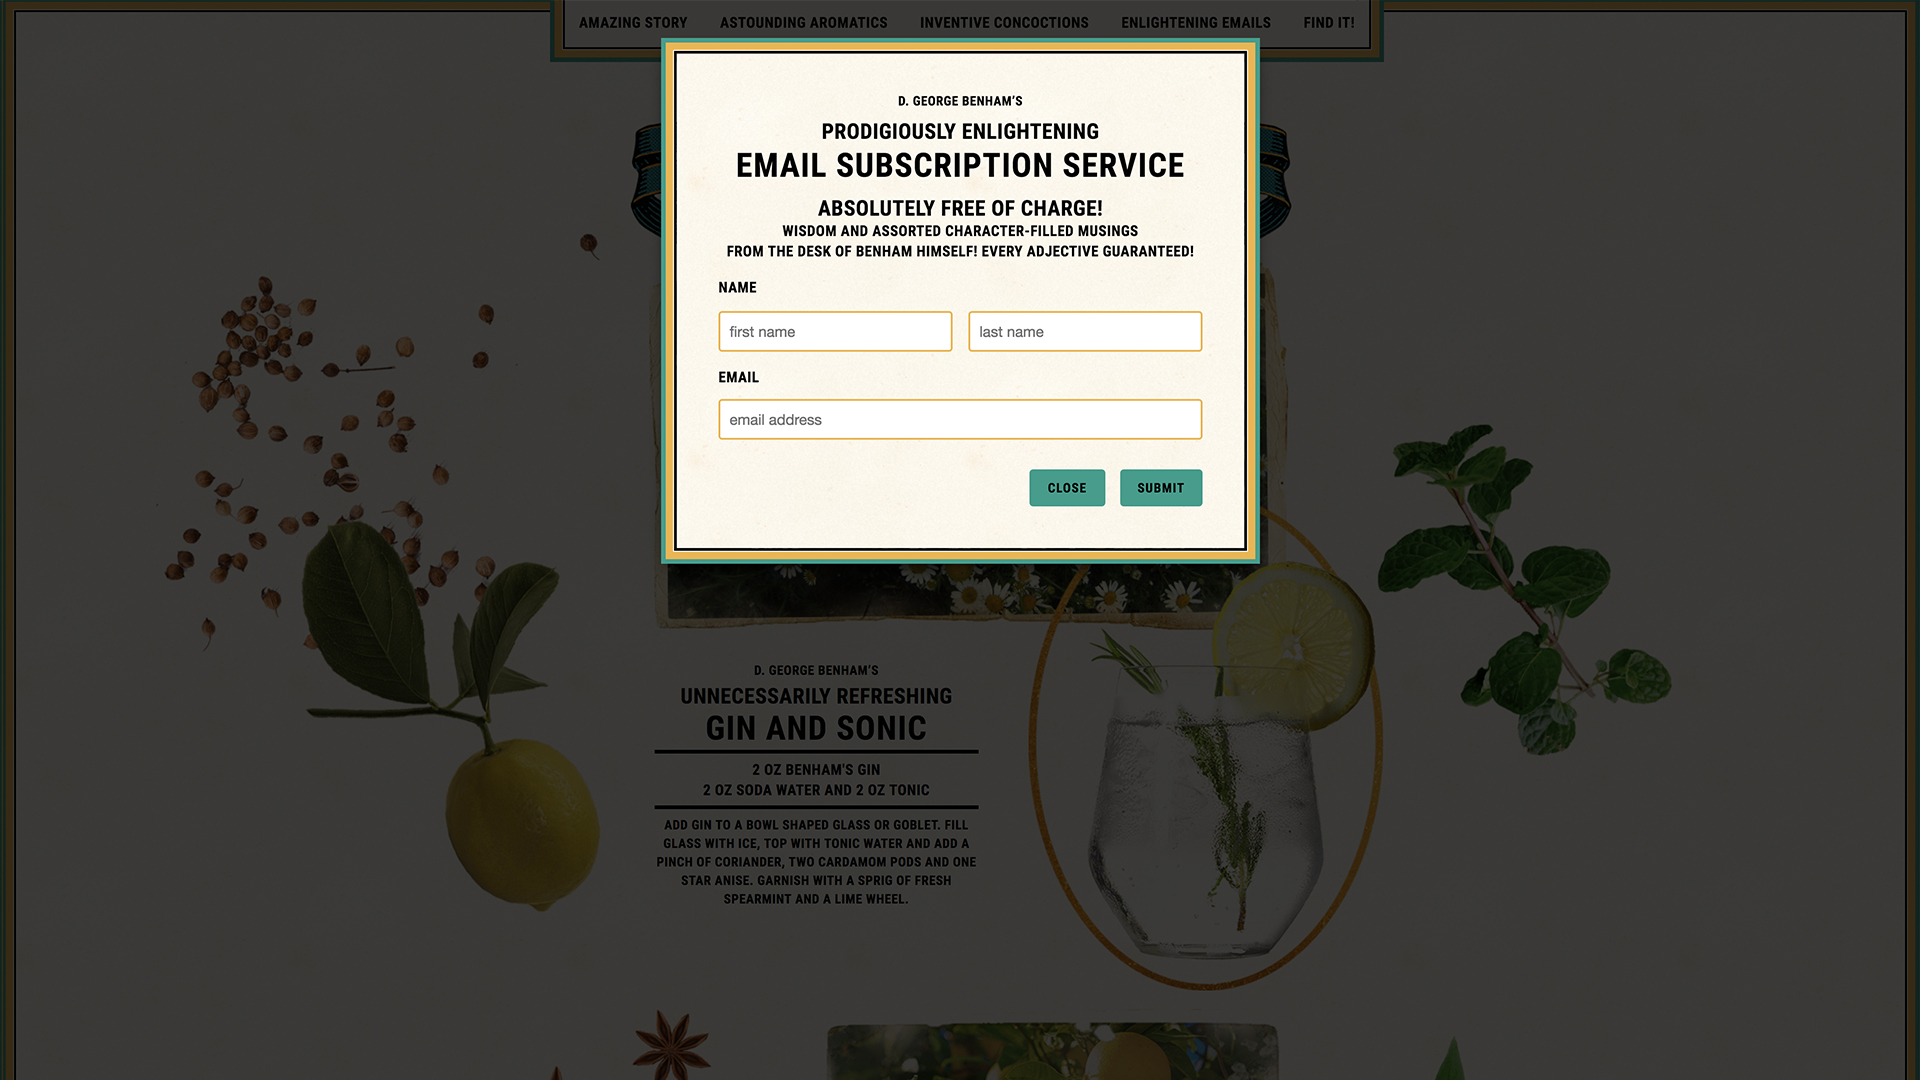 Benham's Gin Website